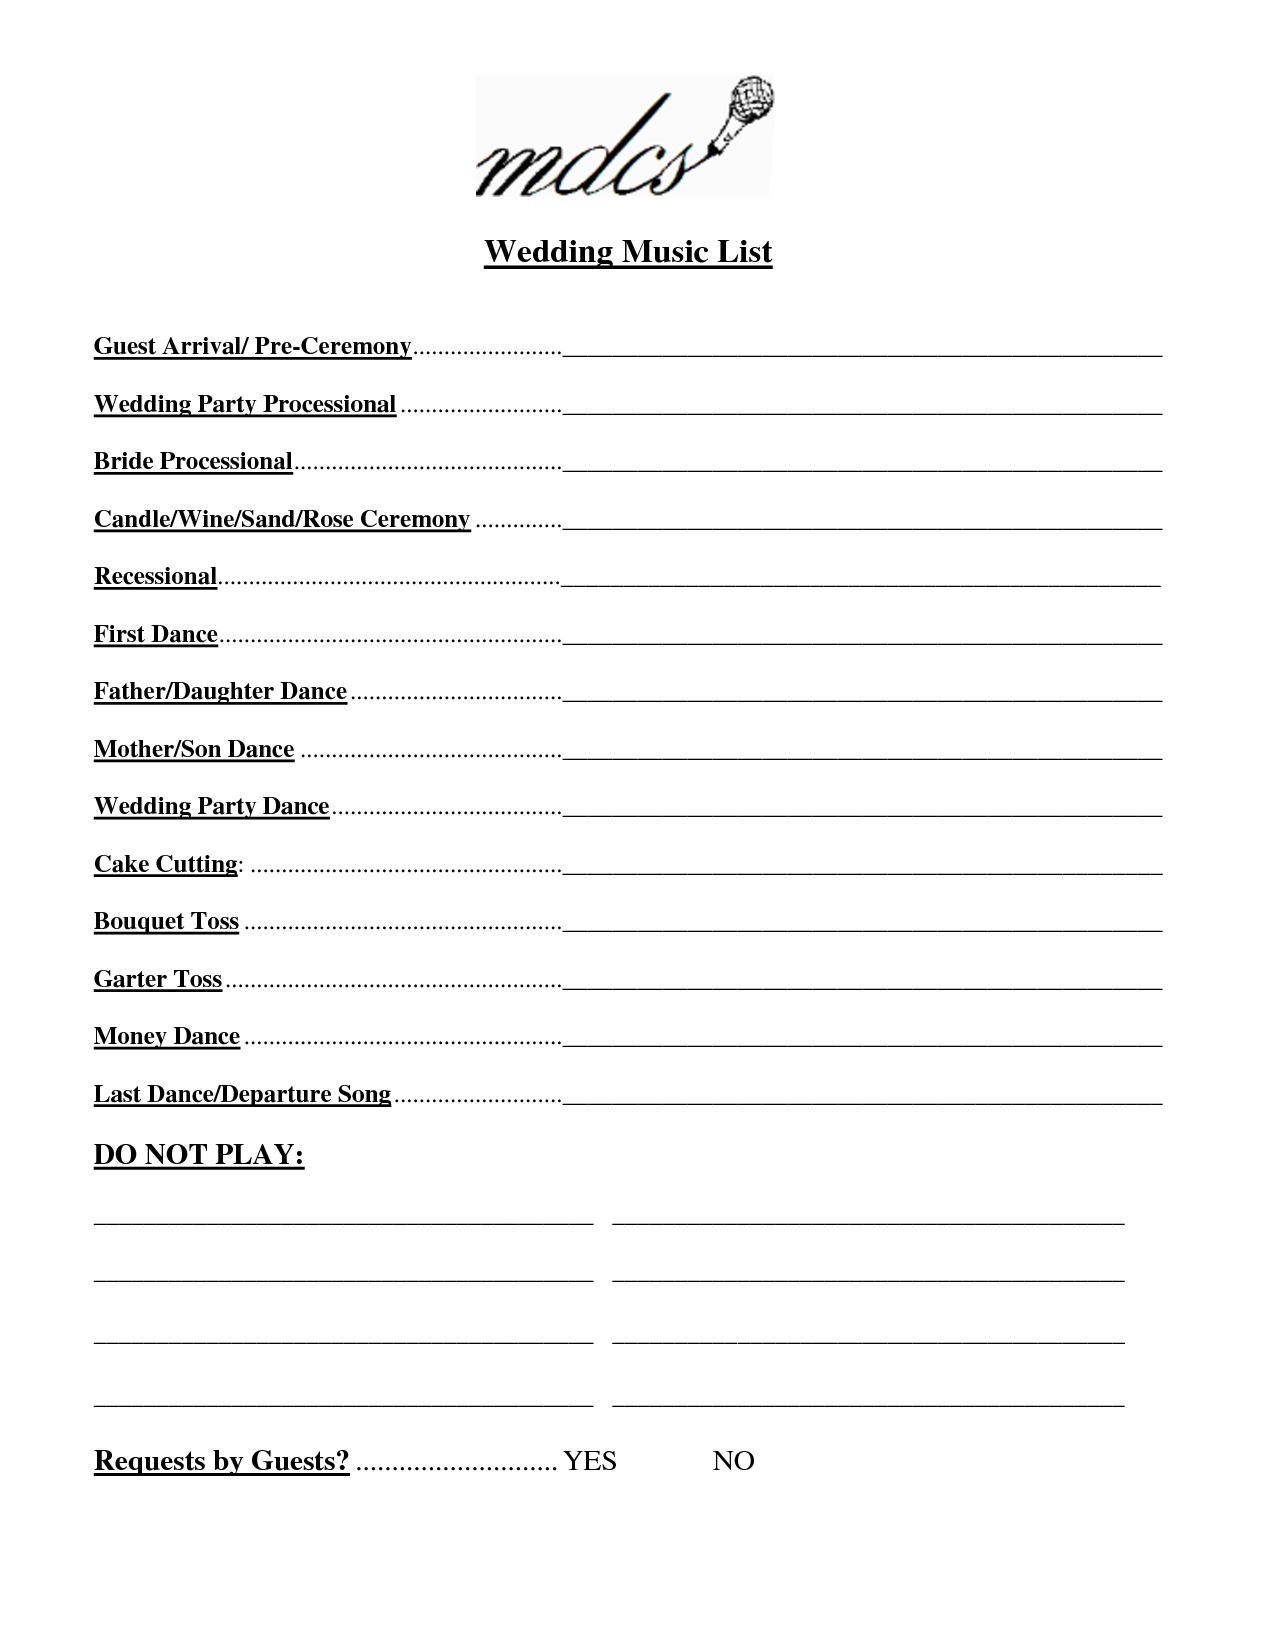 Superior Wedding Party List Template Free | FosterHaley Wedding Music List Intended Bridal Party List Template